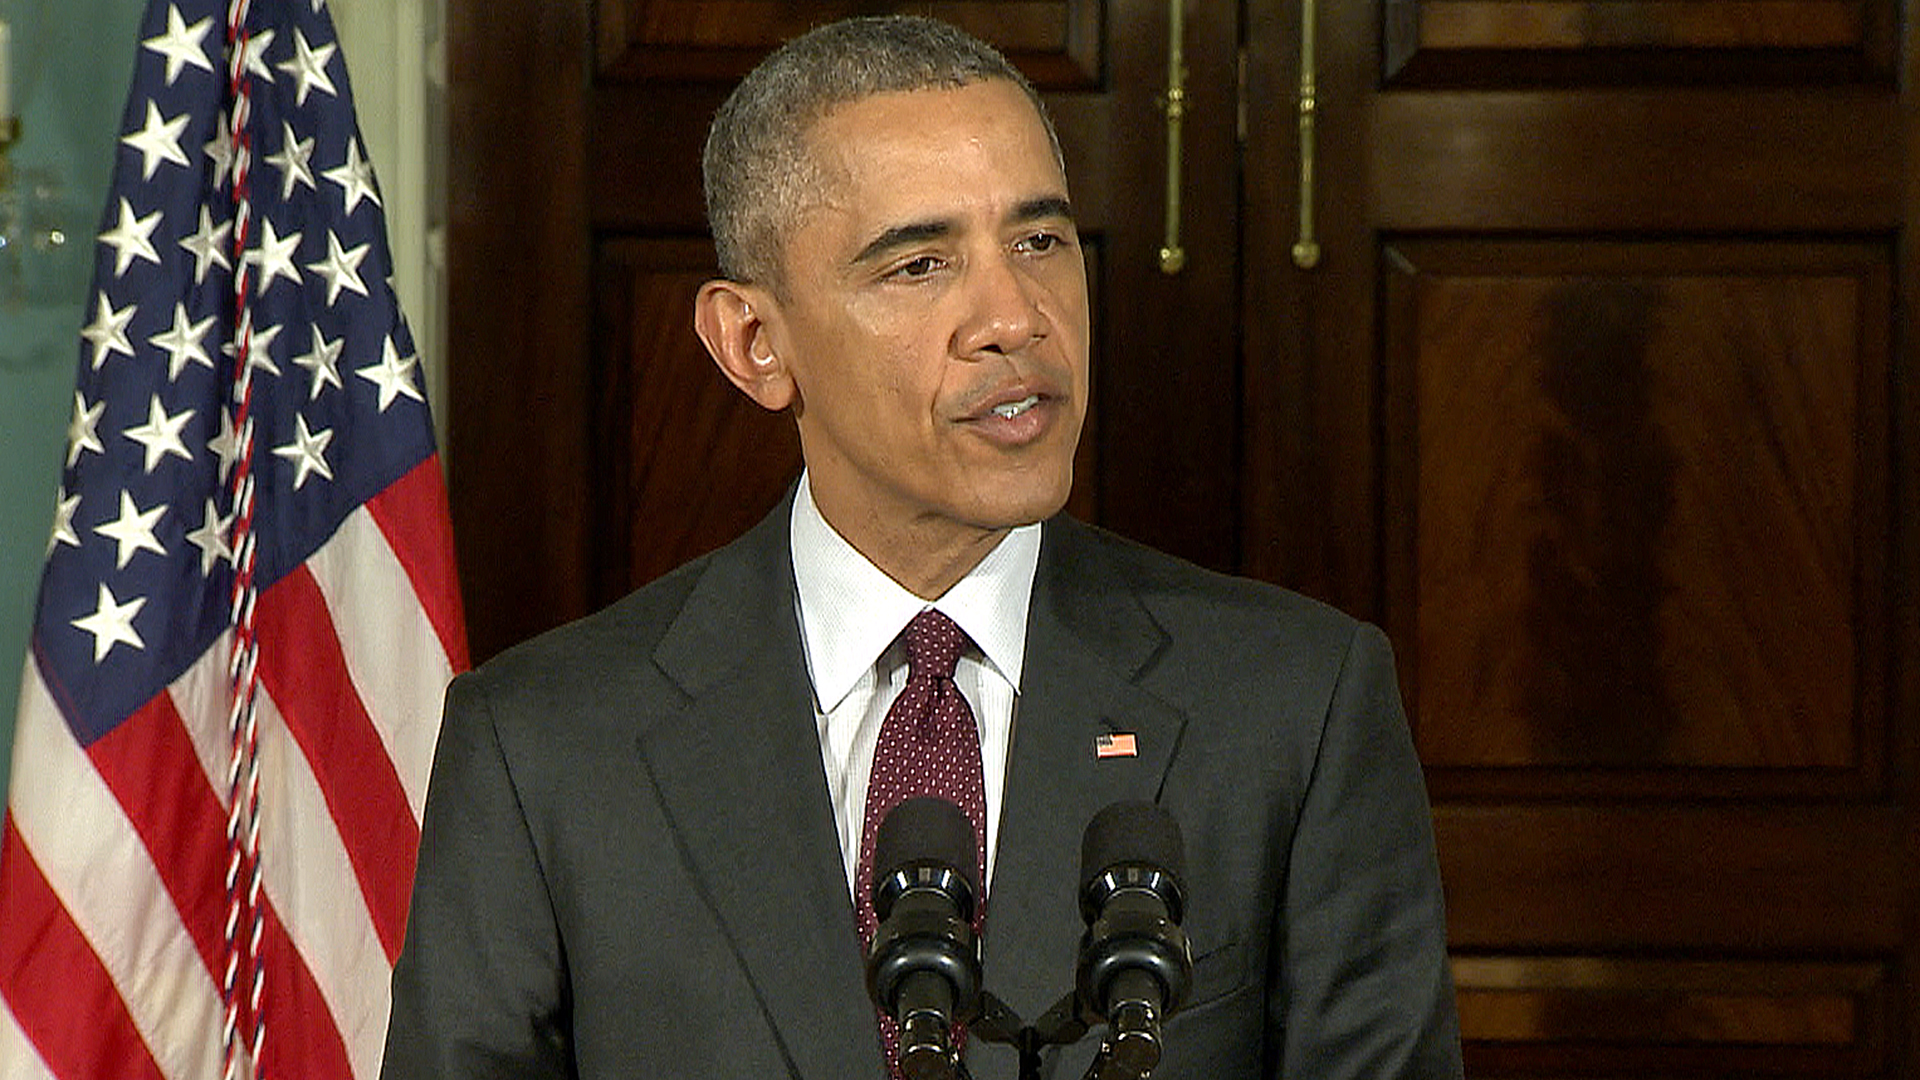 Obama on ISIS: Every Day We Destroy ISIS Forces, Infrastructure, Heavy Weapons